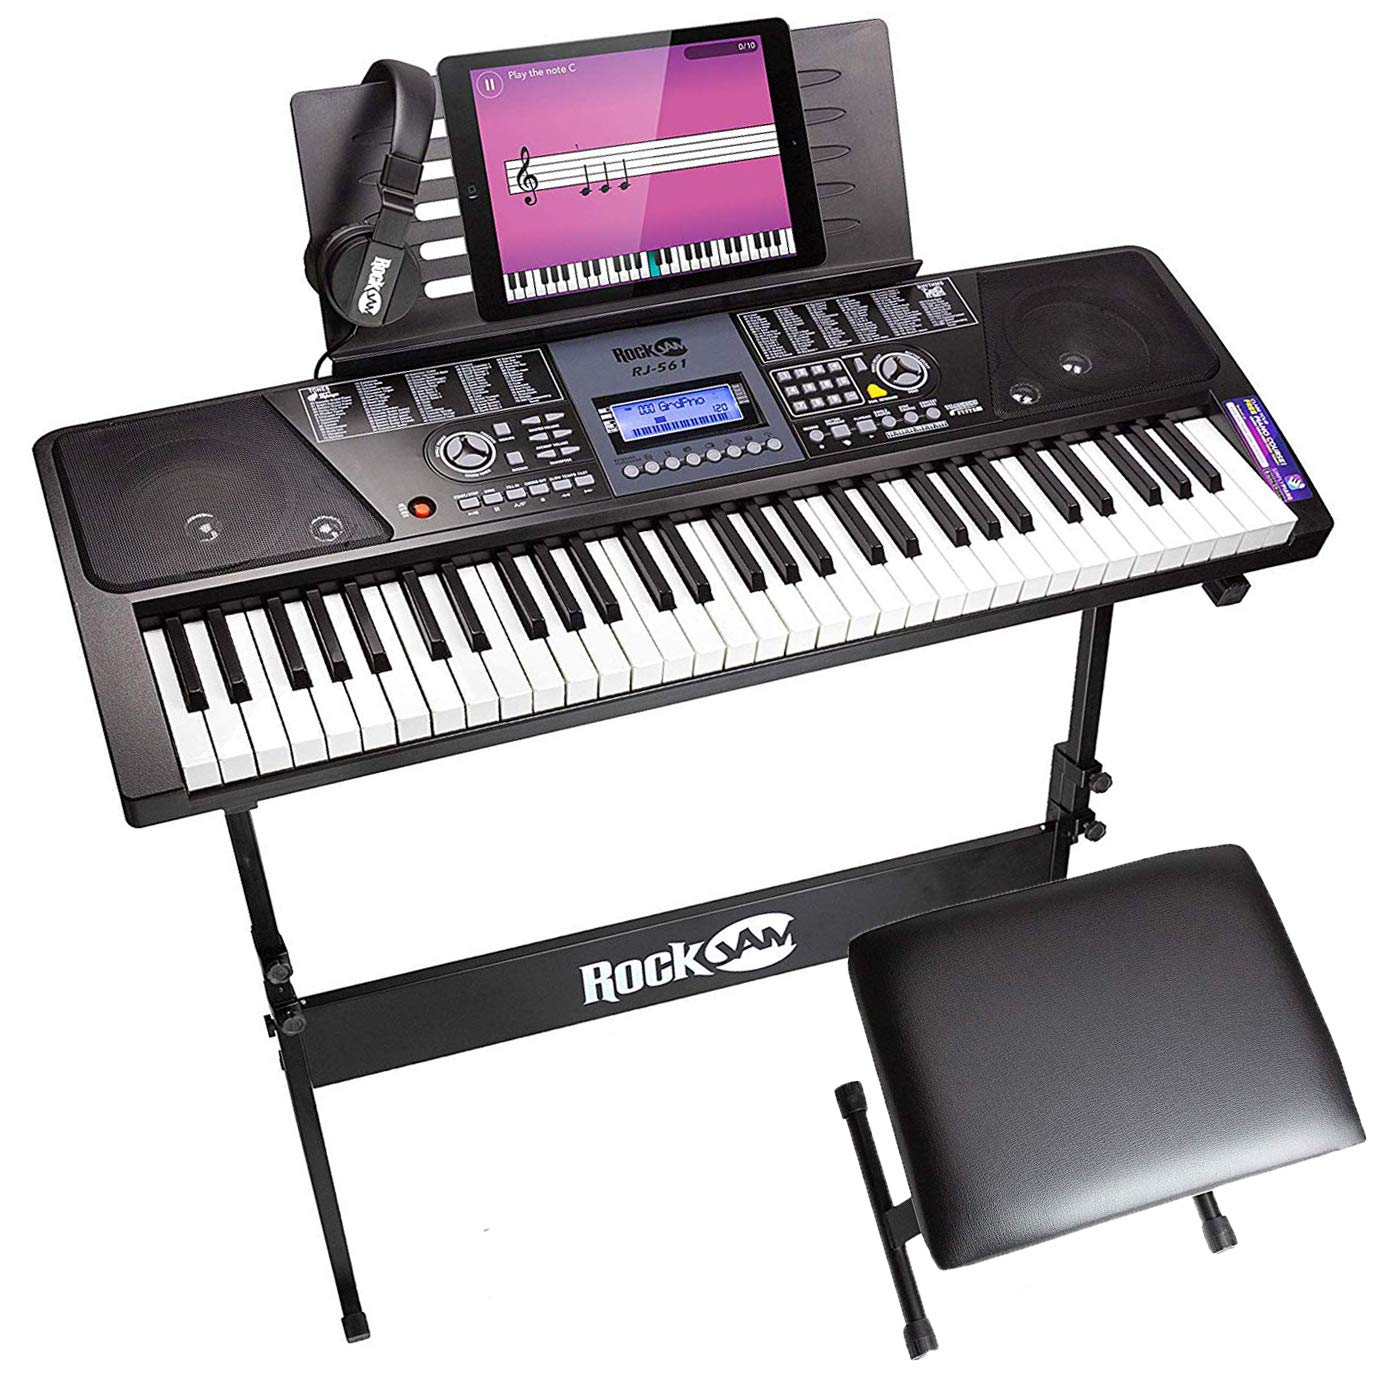 Rock Jam keyboard